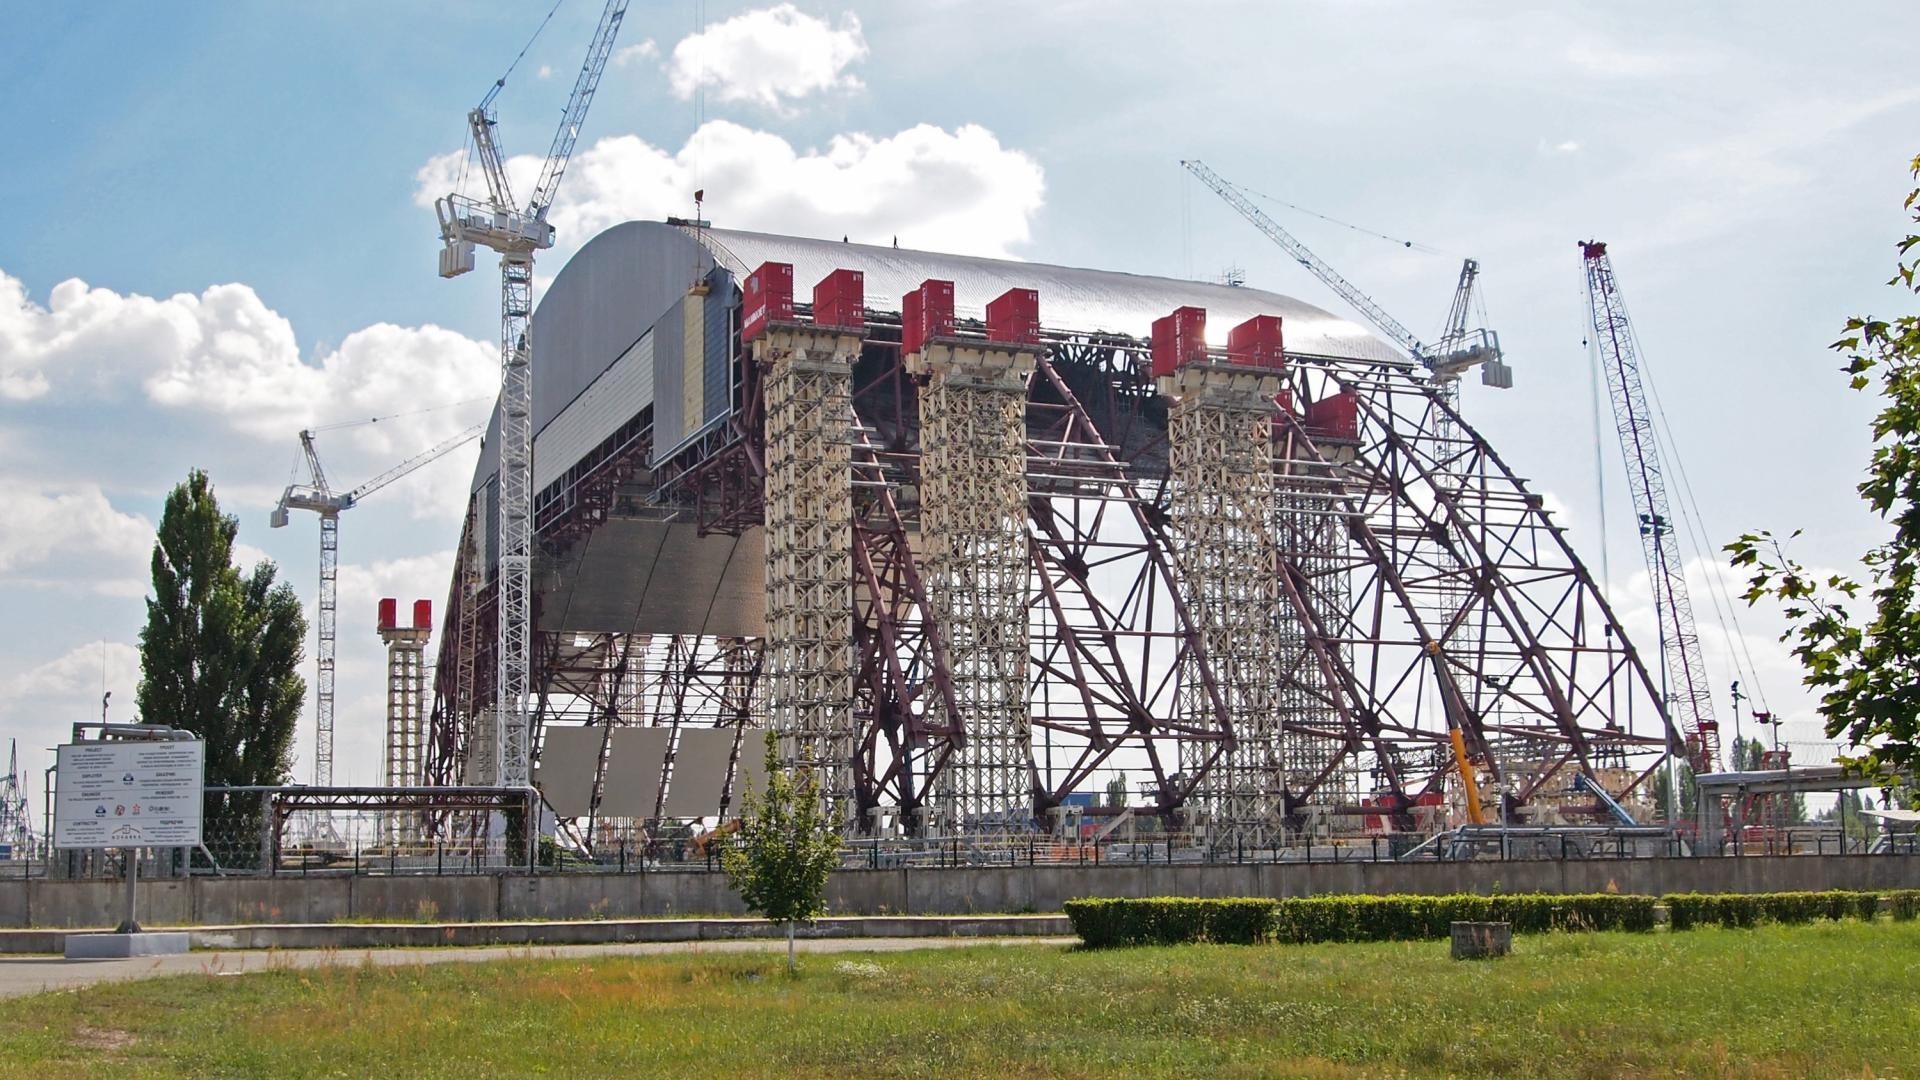 A 110-meter sarcophagus was installed above Chernobyl 11/29/2016 52